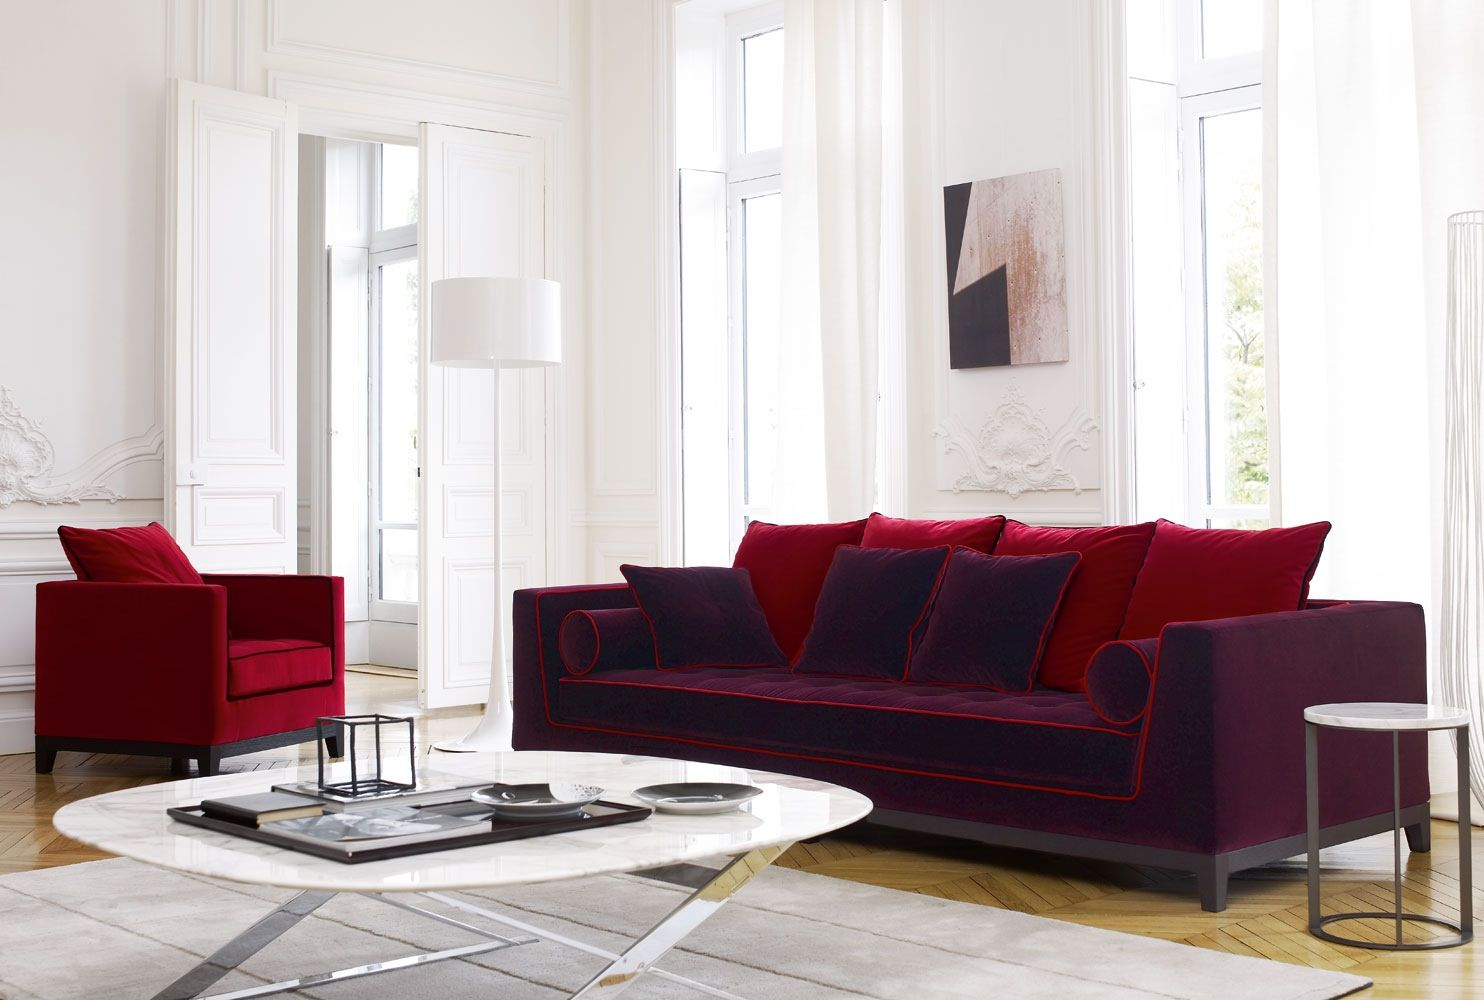 Living Room with Red Sofa | Living Room Design With Marvelous Dark ...